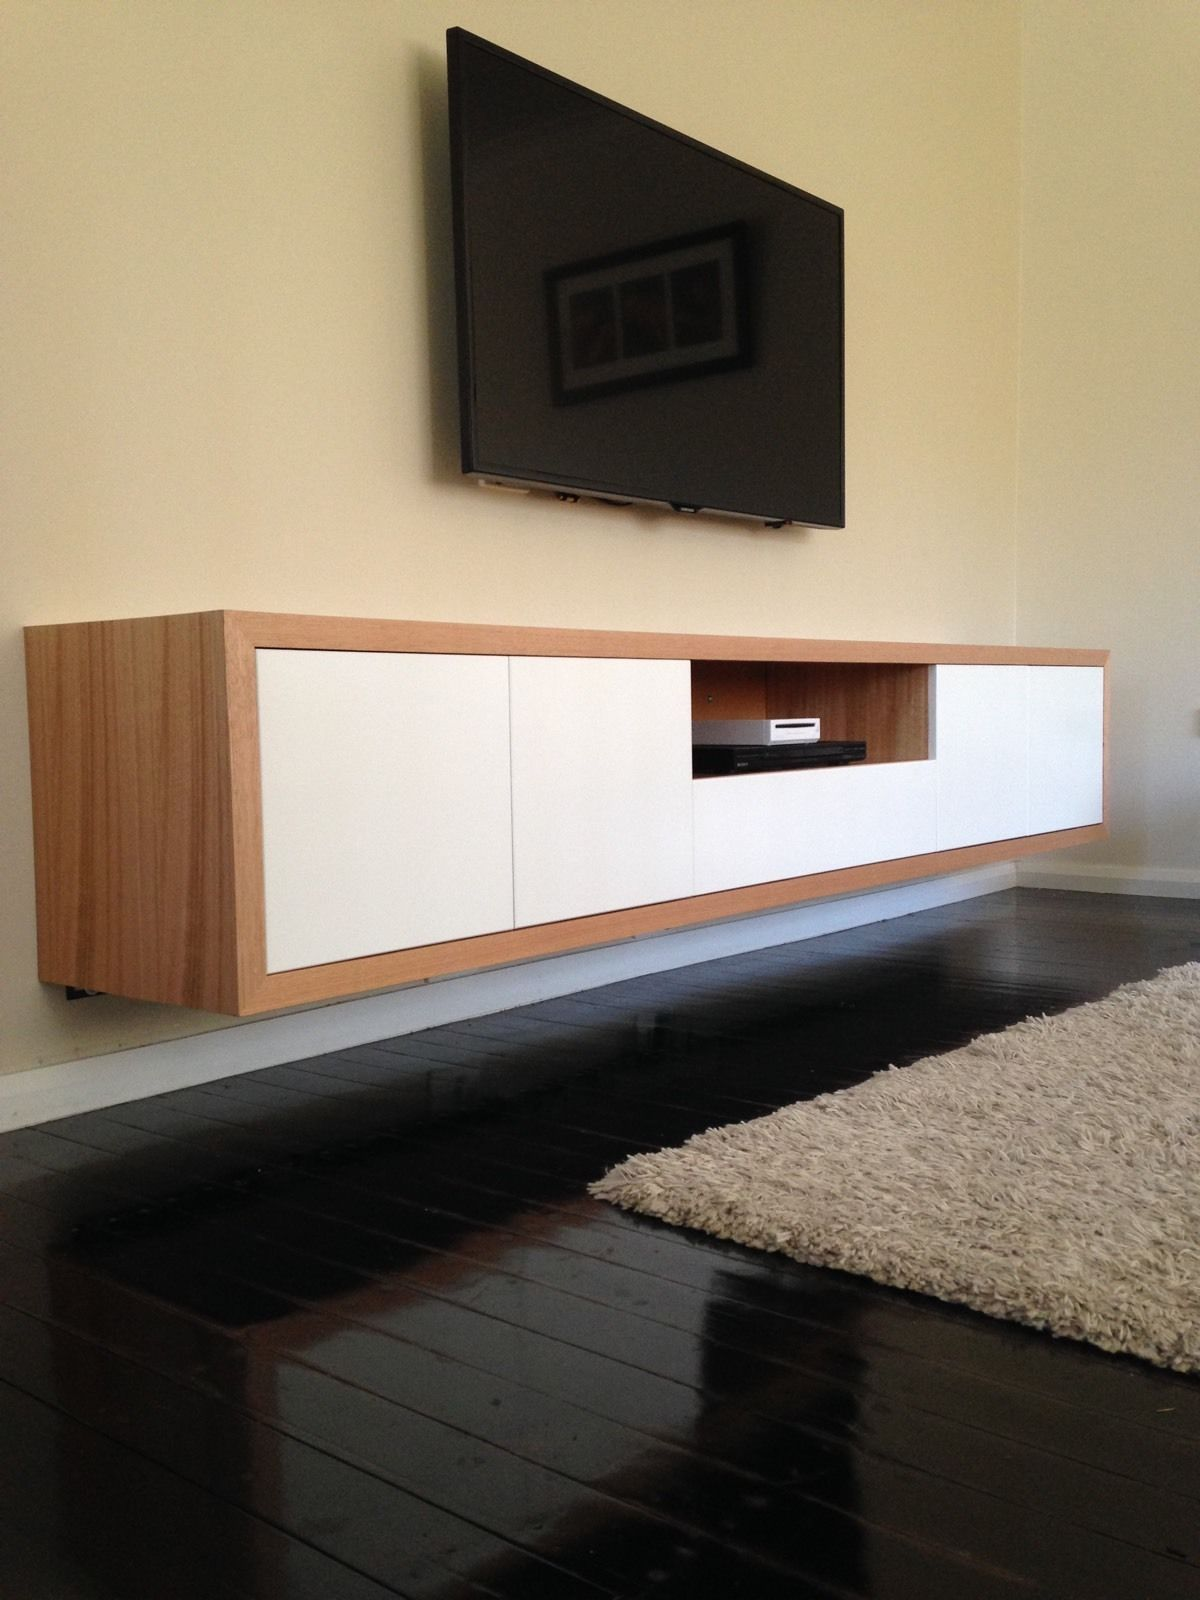 Floating Wall Mounted Tv Unit Tassie Oak Fairmont Wall Mounted Tv Unit 4door 1drawer